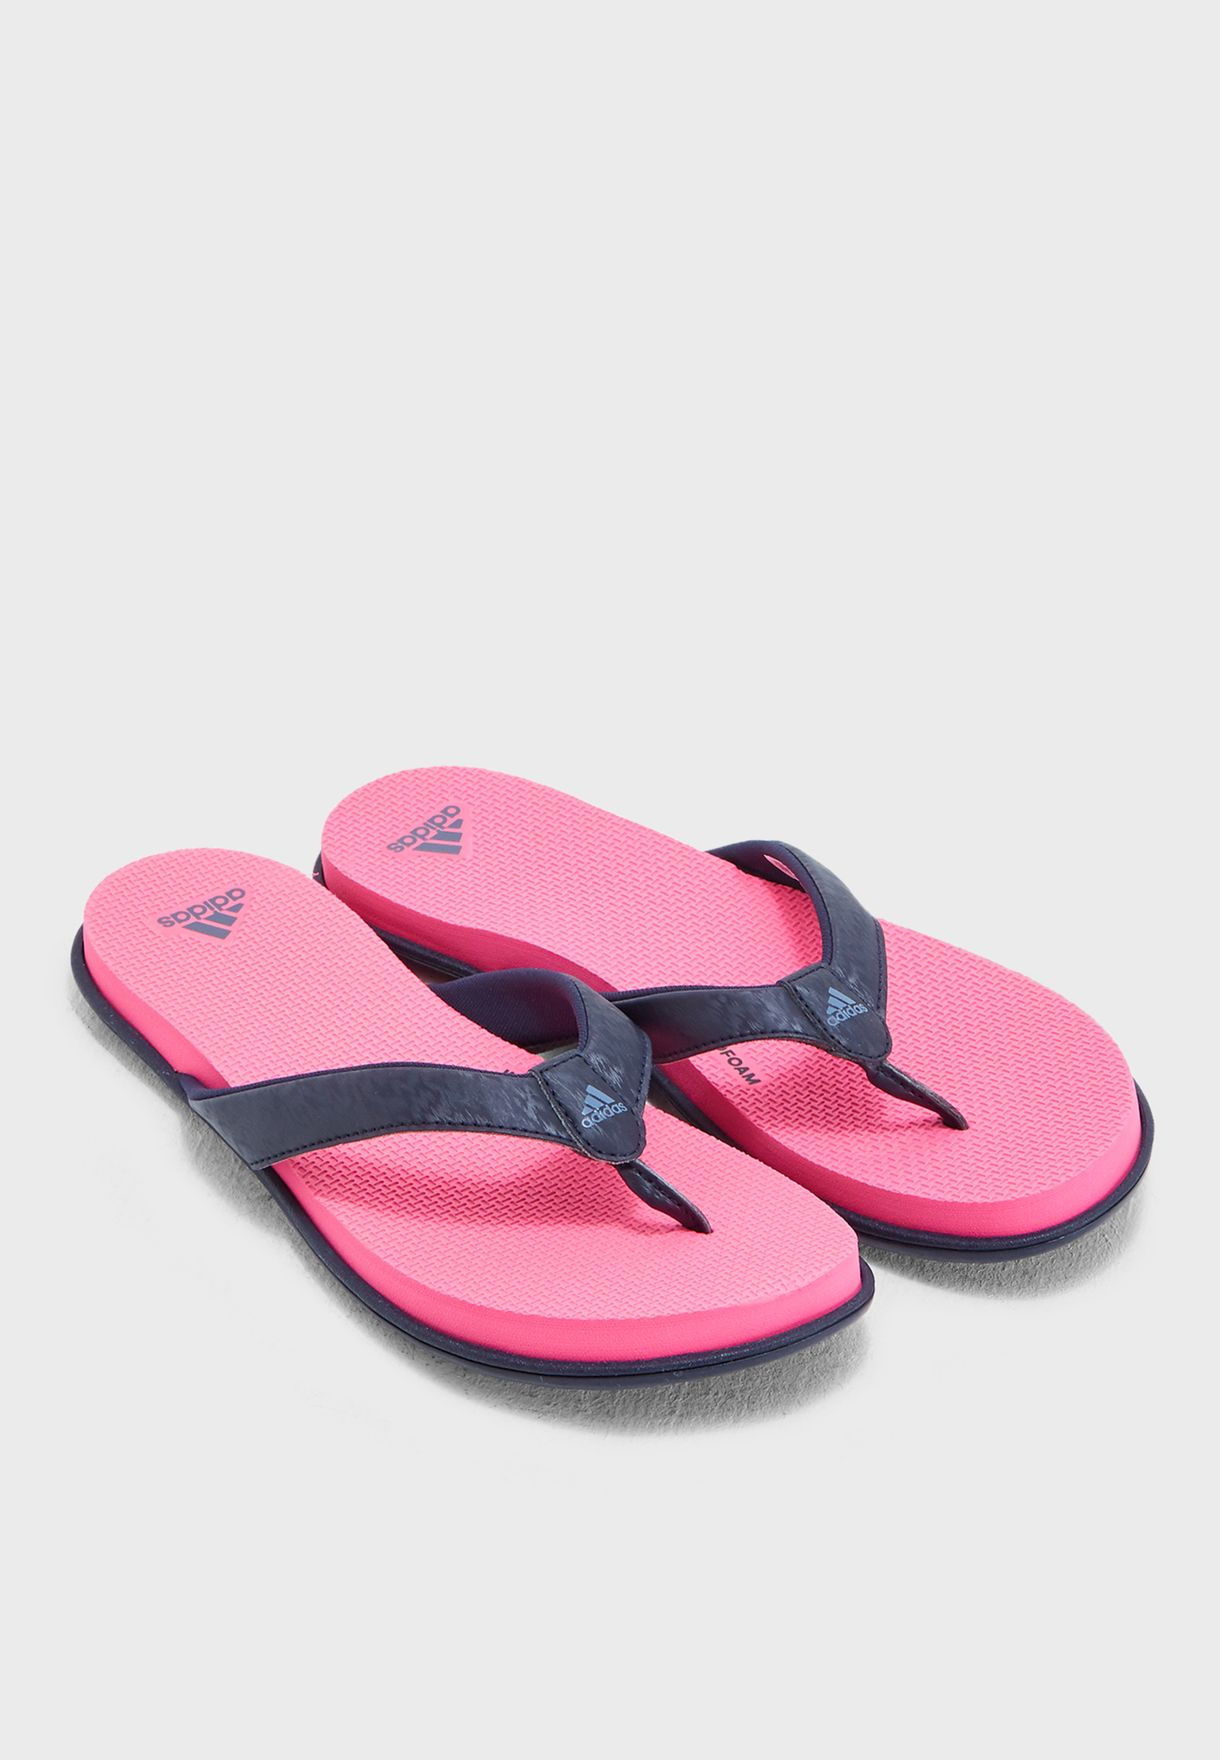 383a5db00 Shop adidas pink Cloudfoam Flip Flop B43600 for Women in UAE ...